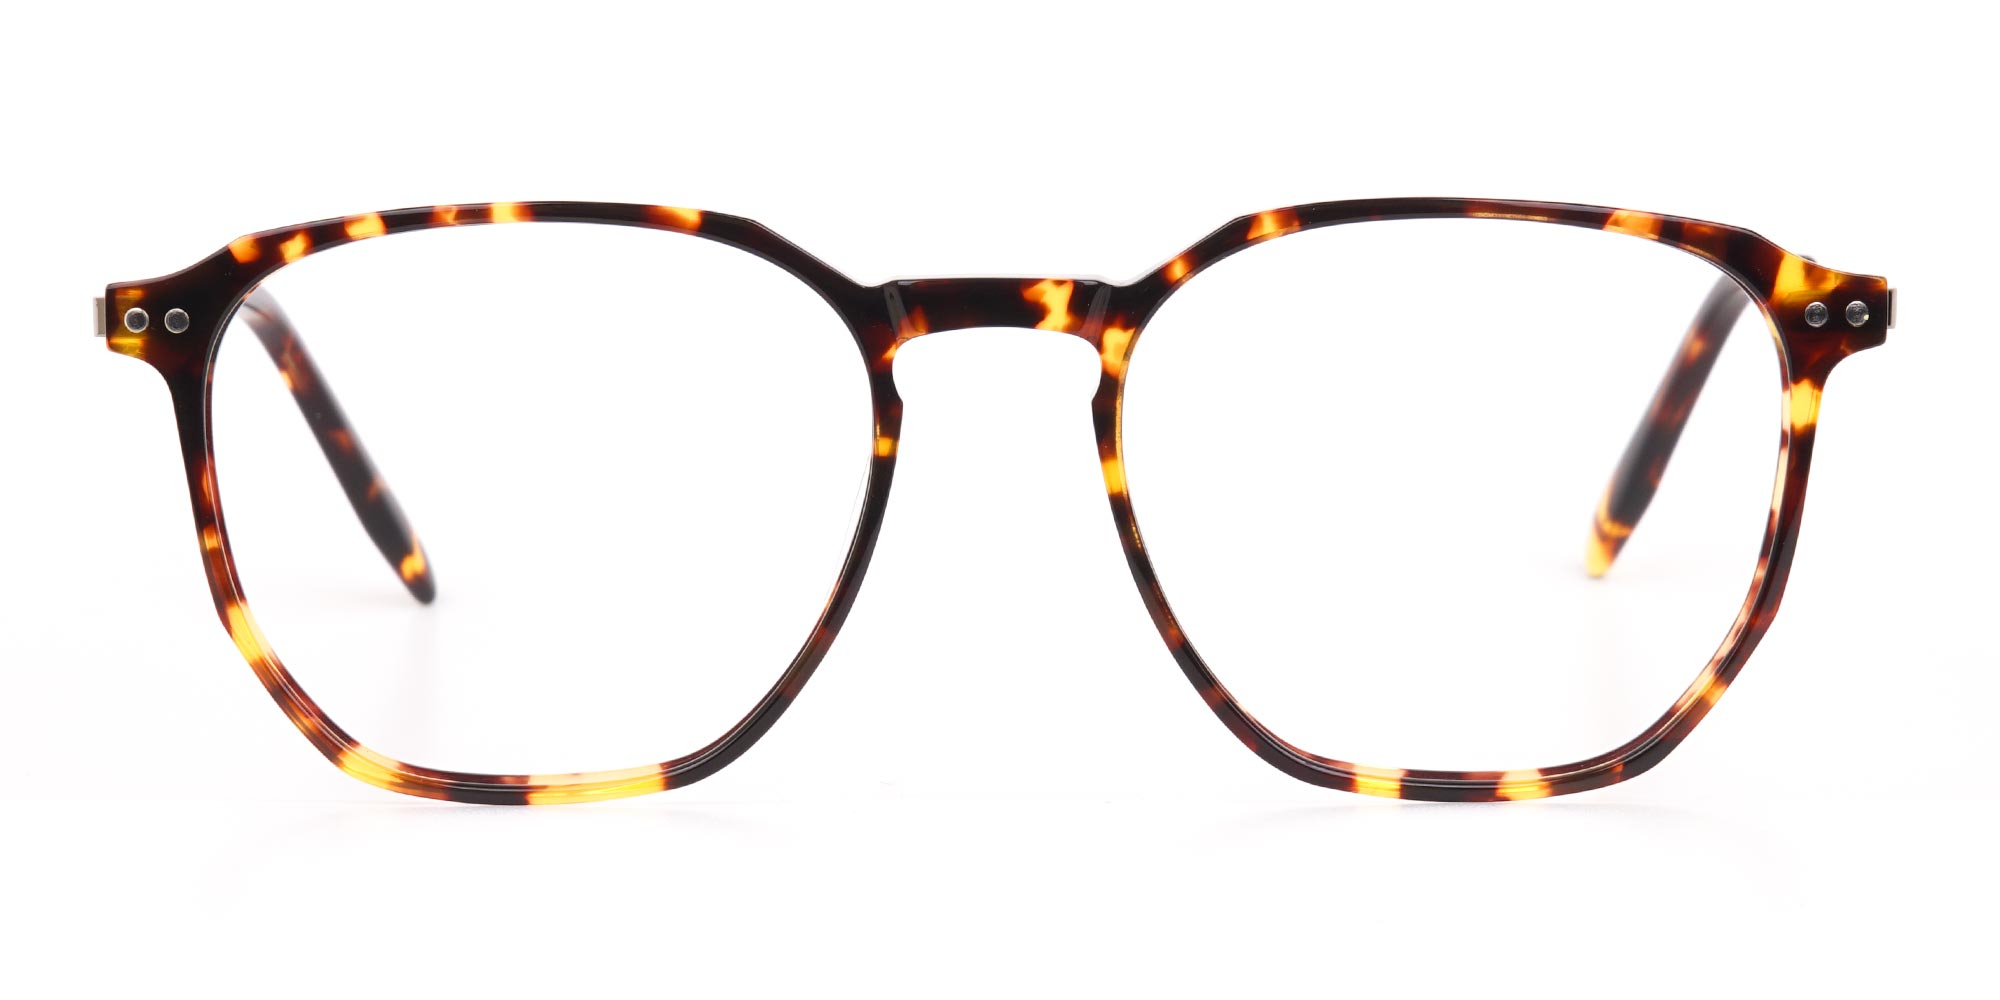 Tortoise Geometric Glasses with silver temple